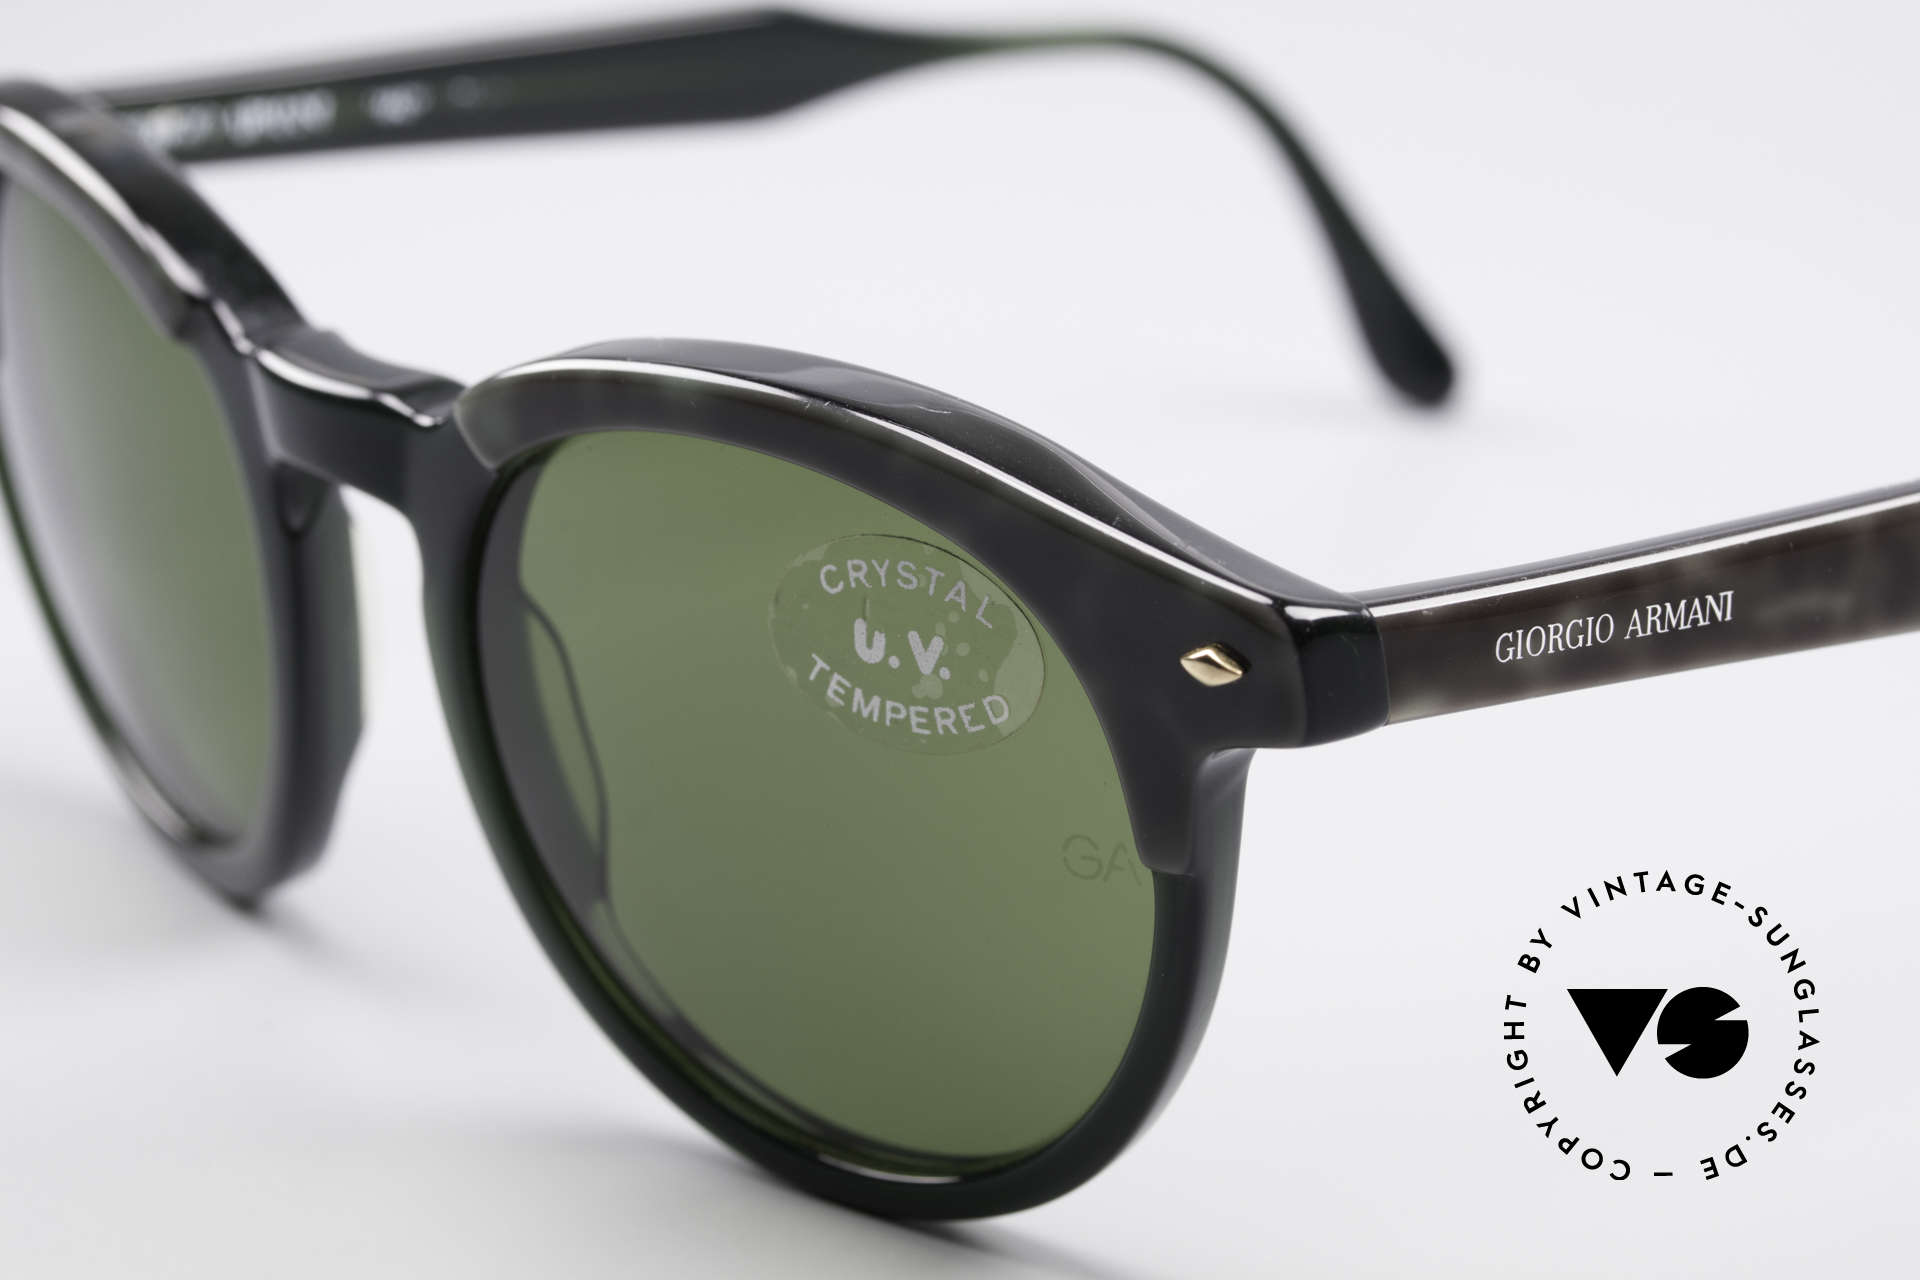 Giorgio Armani 901 Johnny Depp Sunglasses, actor Johnny Depp made this style popular, in these days, Made for Men